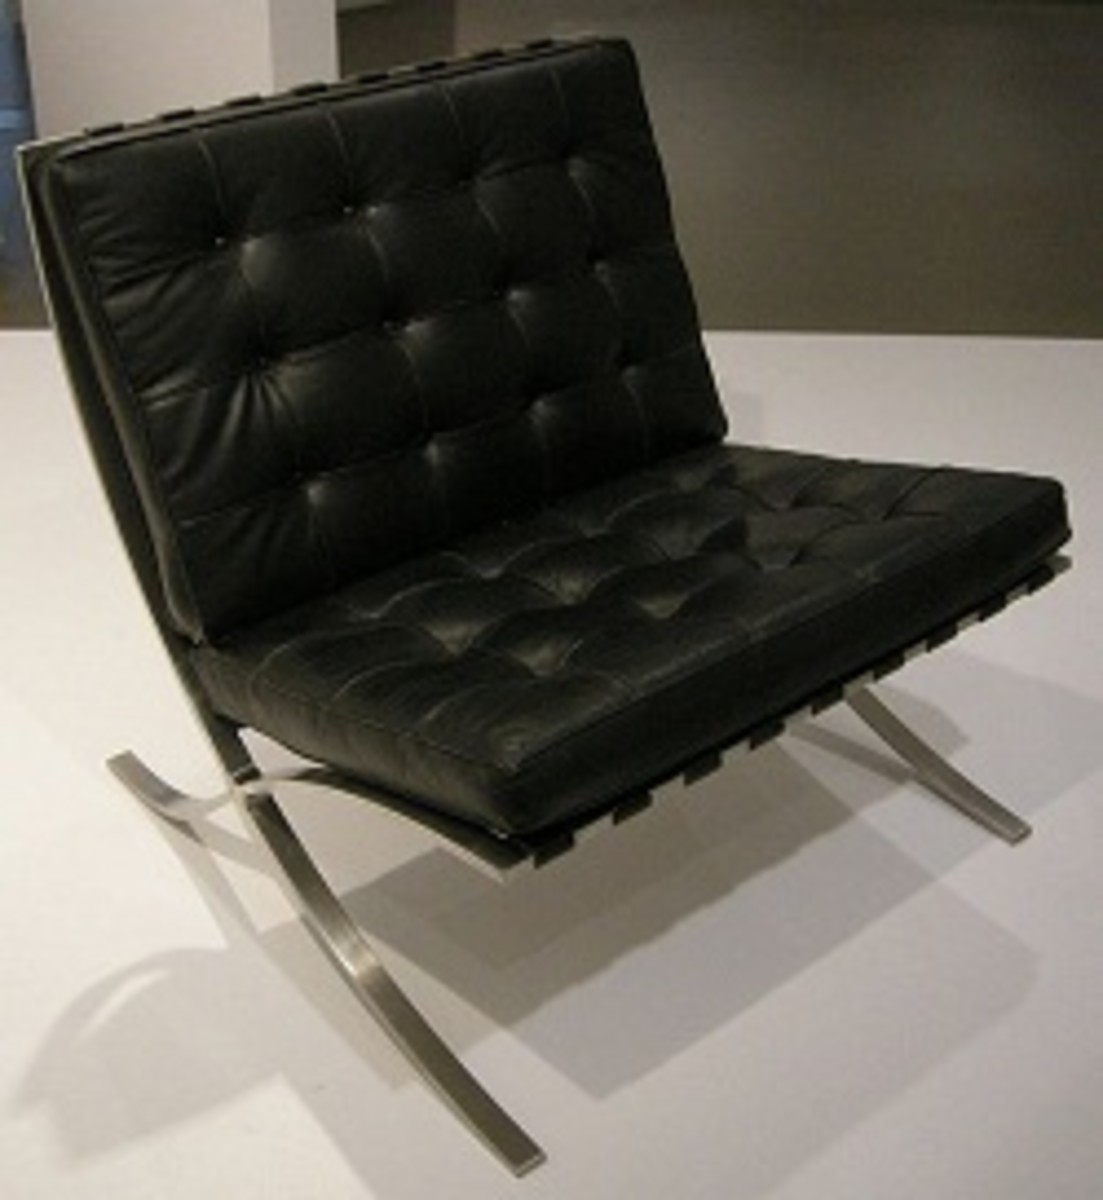 An example of the famous Barcelona Chair designed by Mies van der Rohe.